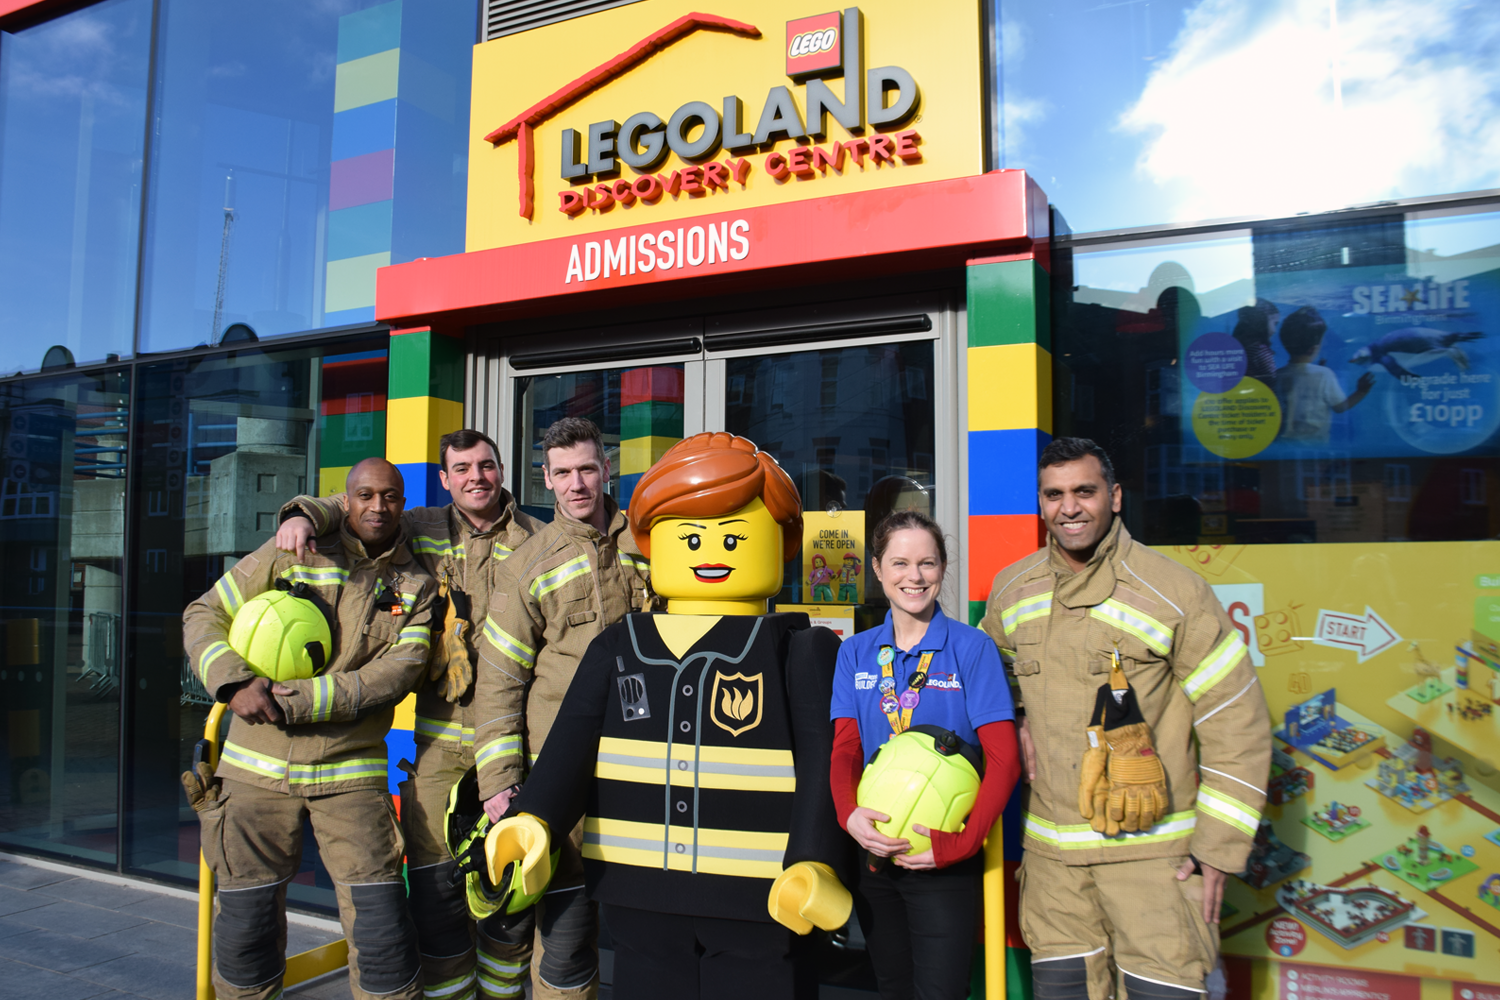 LDC Birmingham are offering free entry to Firefighters from 3rd Feb to 1st March!